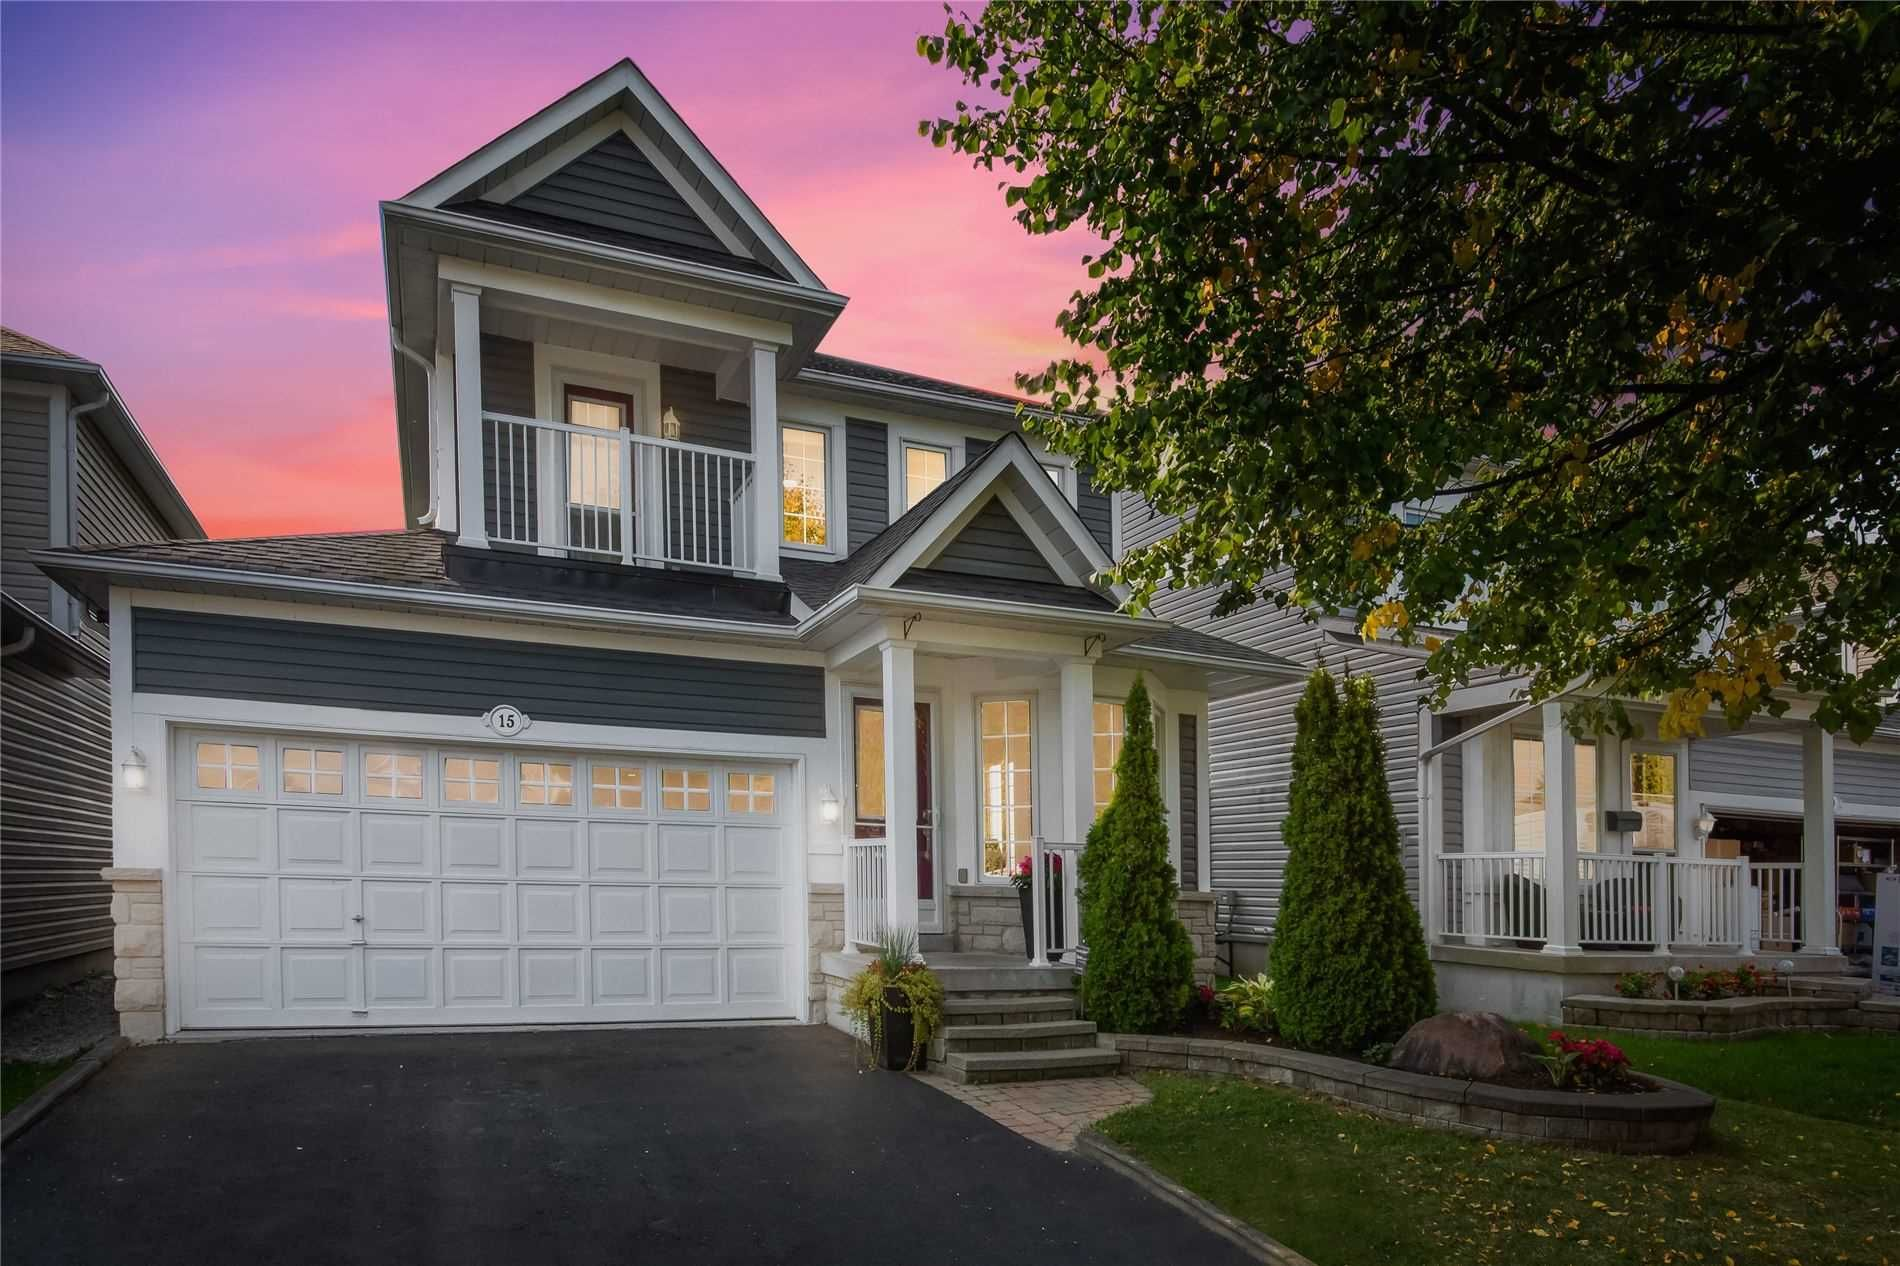 Main Photo: 15 Rosemeadow Crescent in Clarington: Newcastle House (2-Storey) for sale : MLS®# E4924958